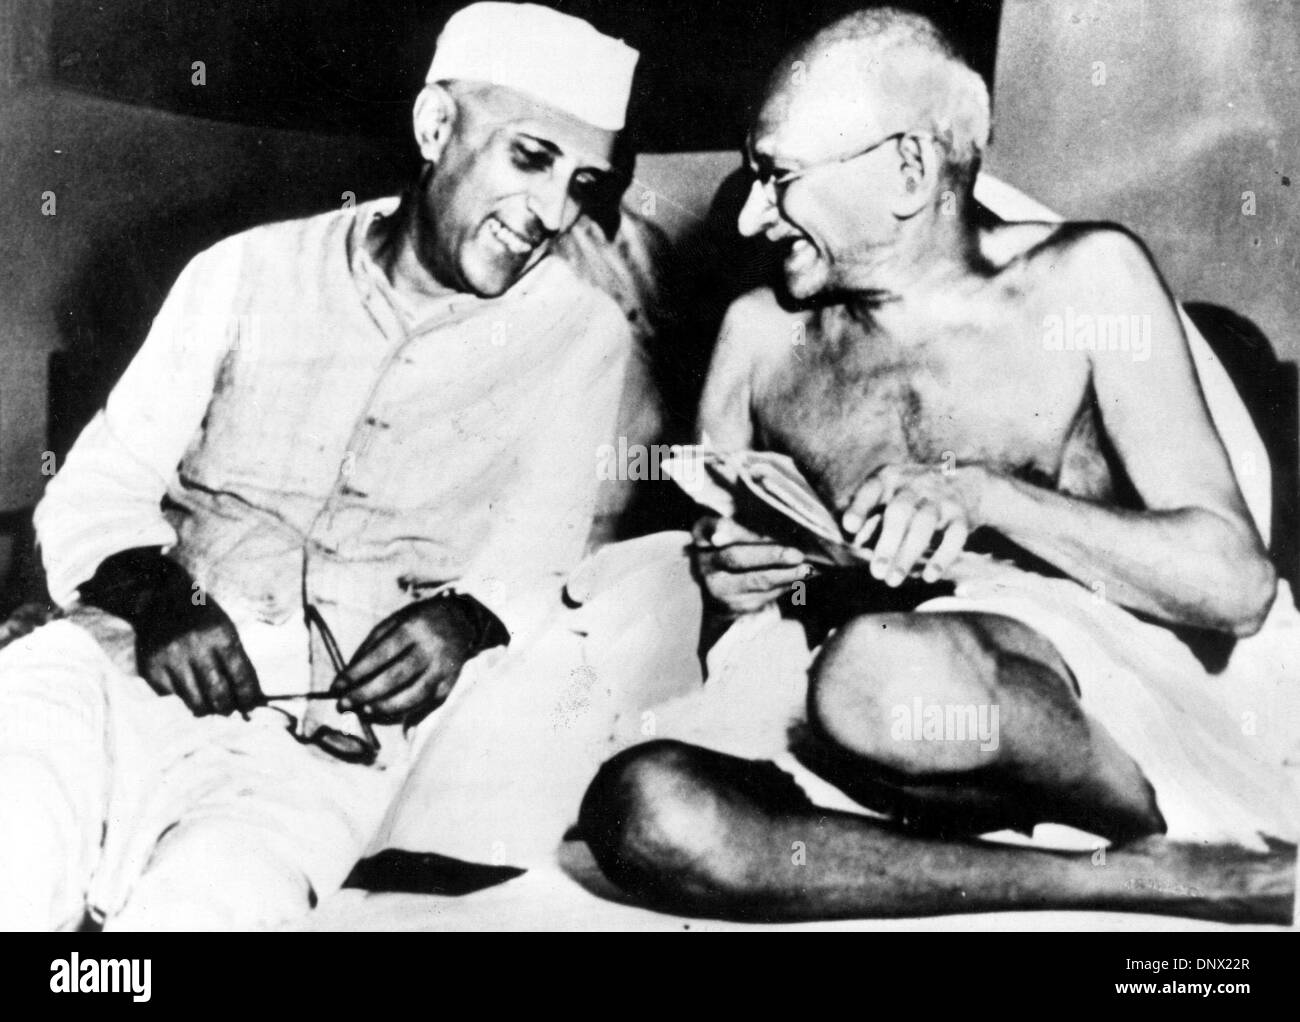 Jan. 1, 1940 - Delhi, India - A major political and spiritual leader of India and the Indian independence movement MAHATMA GANDHI (right) and his comrade-in-arms JAWAHARLAL NEHRU. GANDHI, recognized in India as the Father of the Nation, was the pioneer of Satyagraha-the resistance of tyranny through mass civil disobedience, firmly founded upon ahimsa or total non-violence-which led - Stock Image